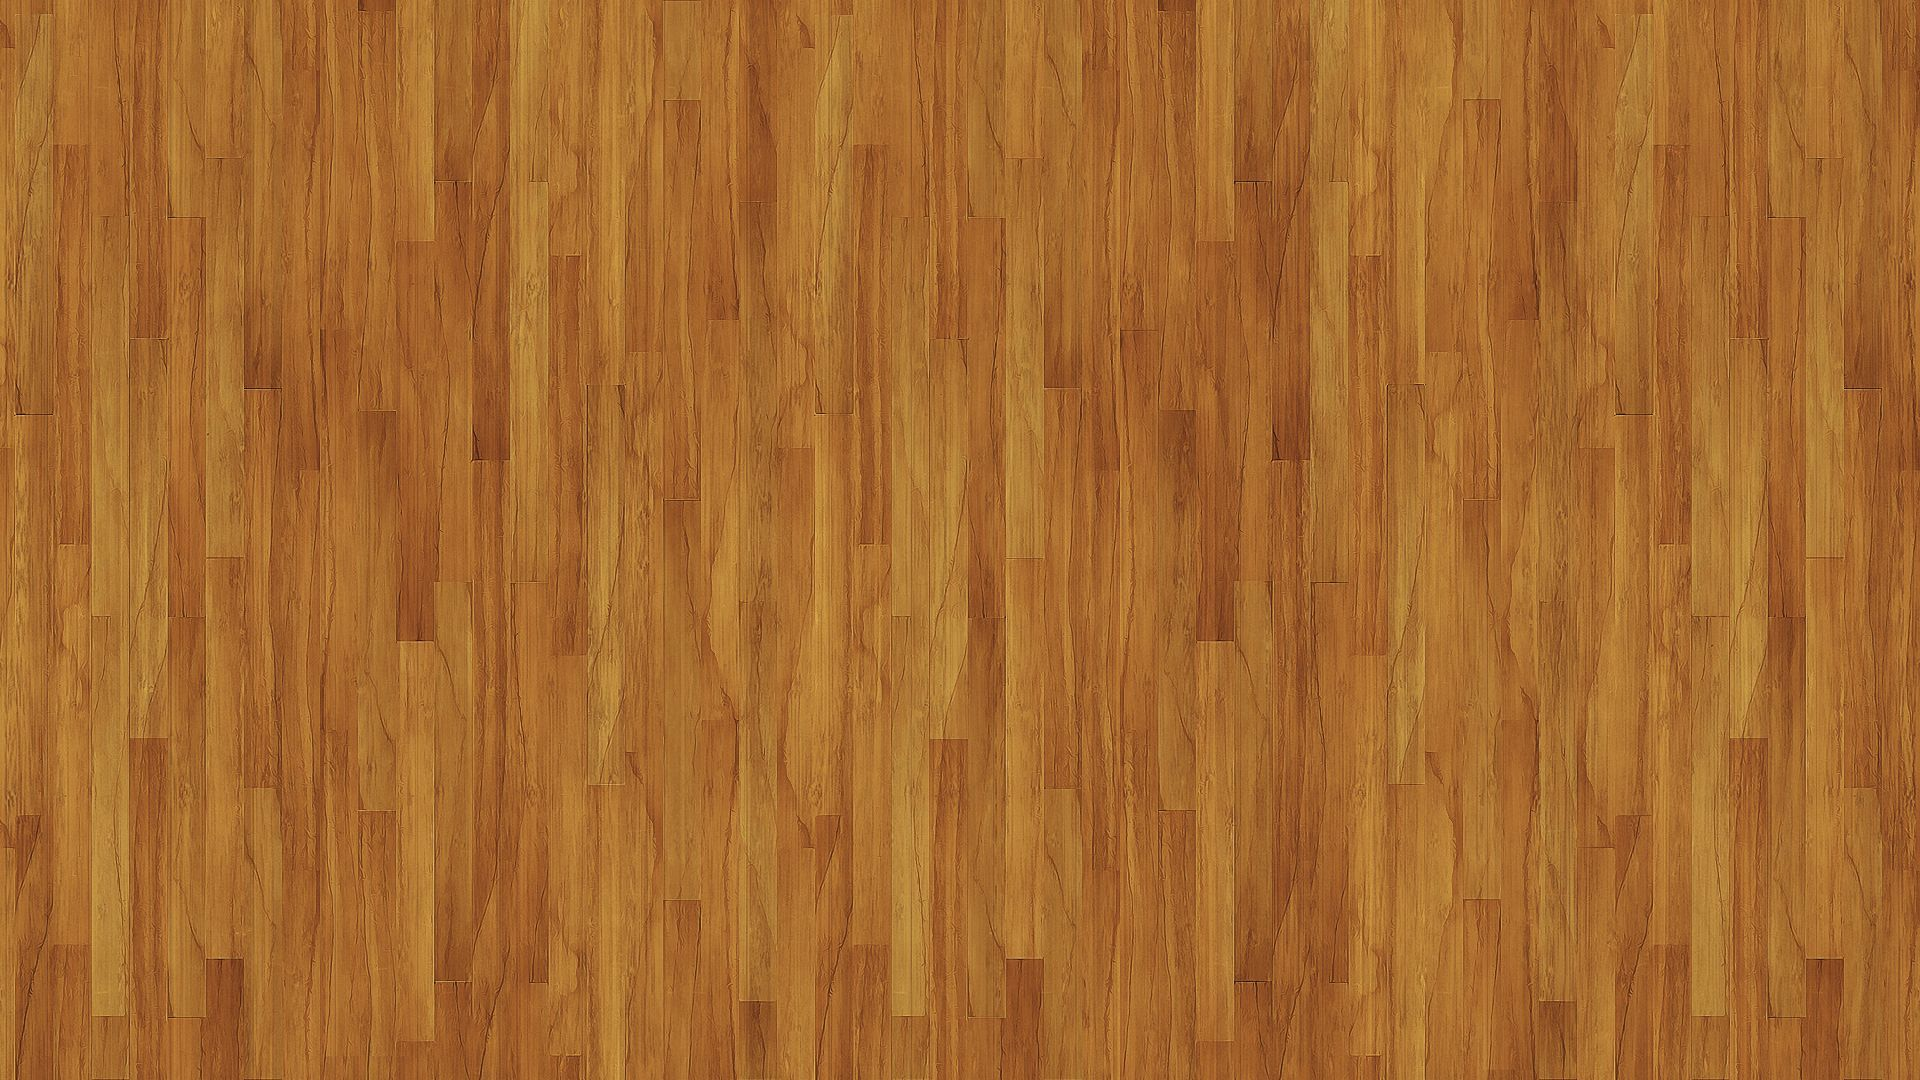 Wood floor wallpaper wallpapersafari for At floor or on floor